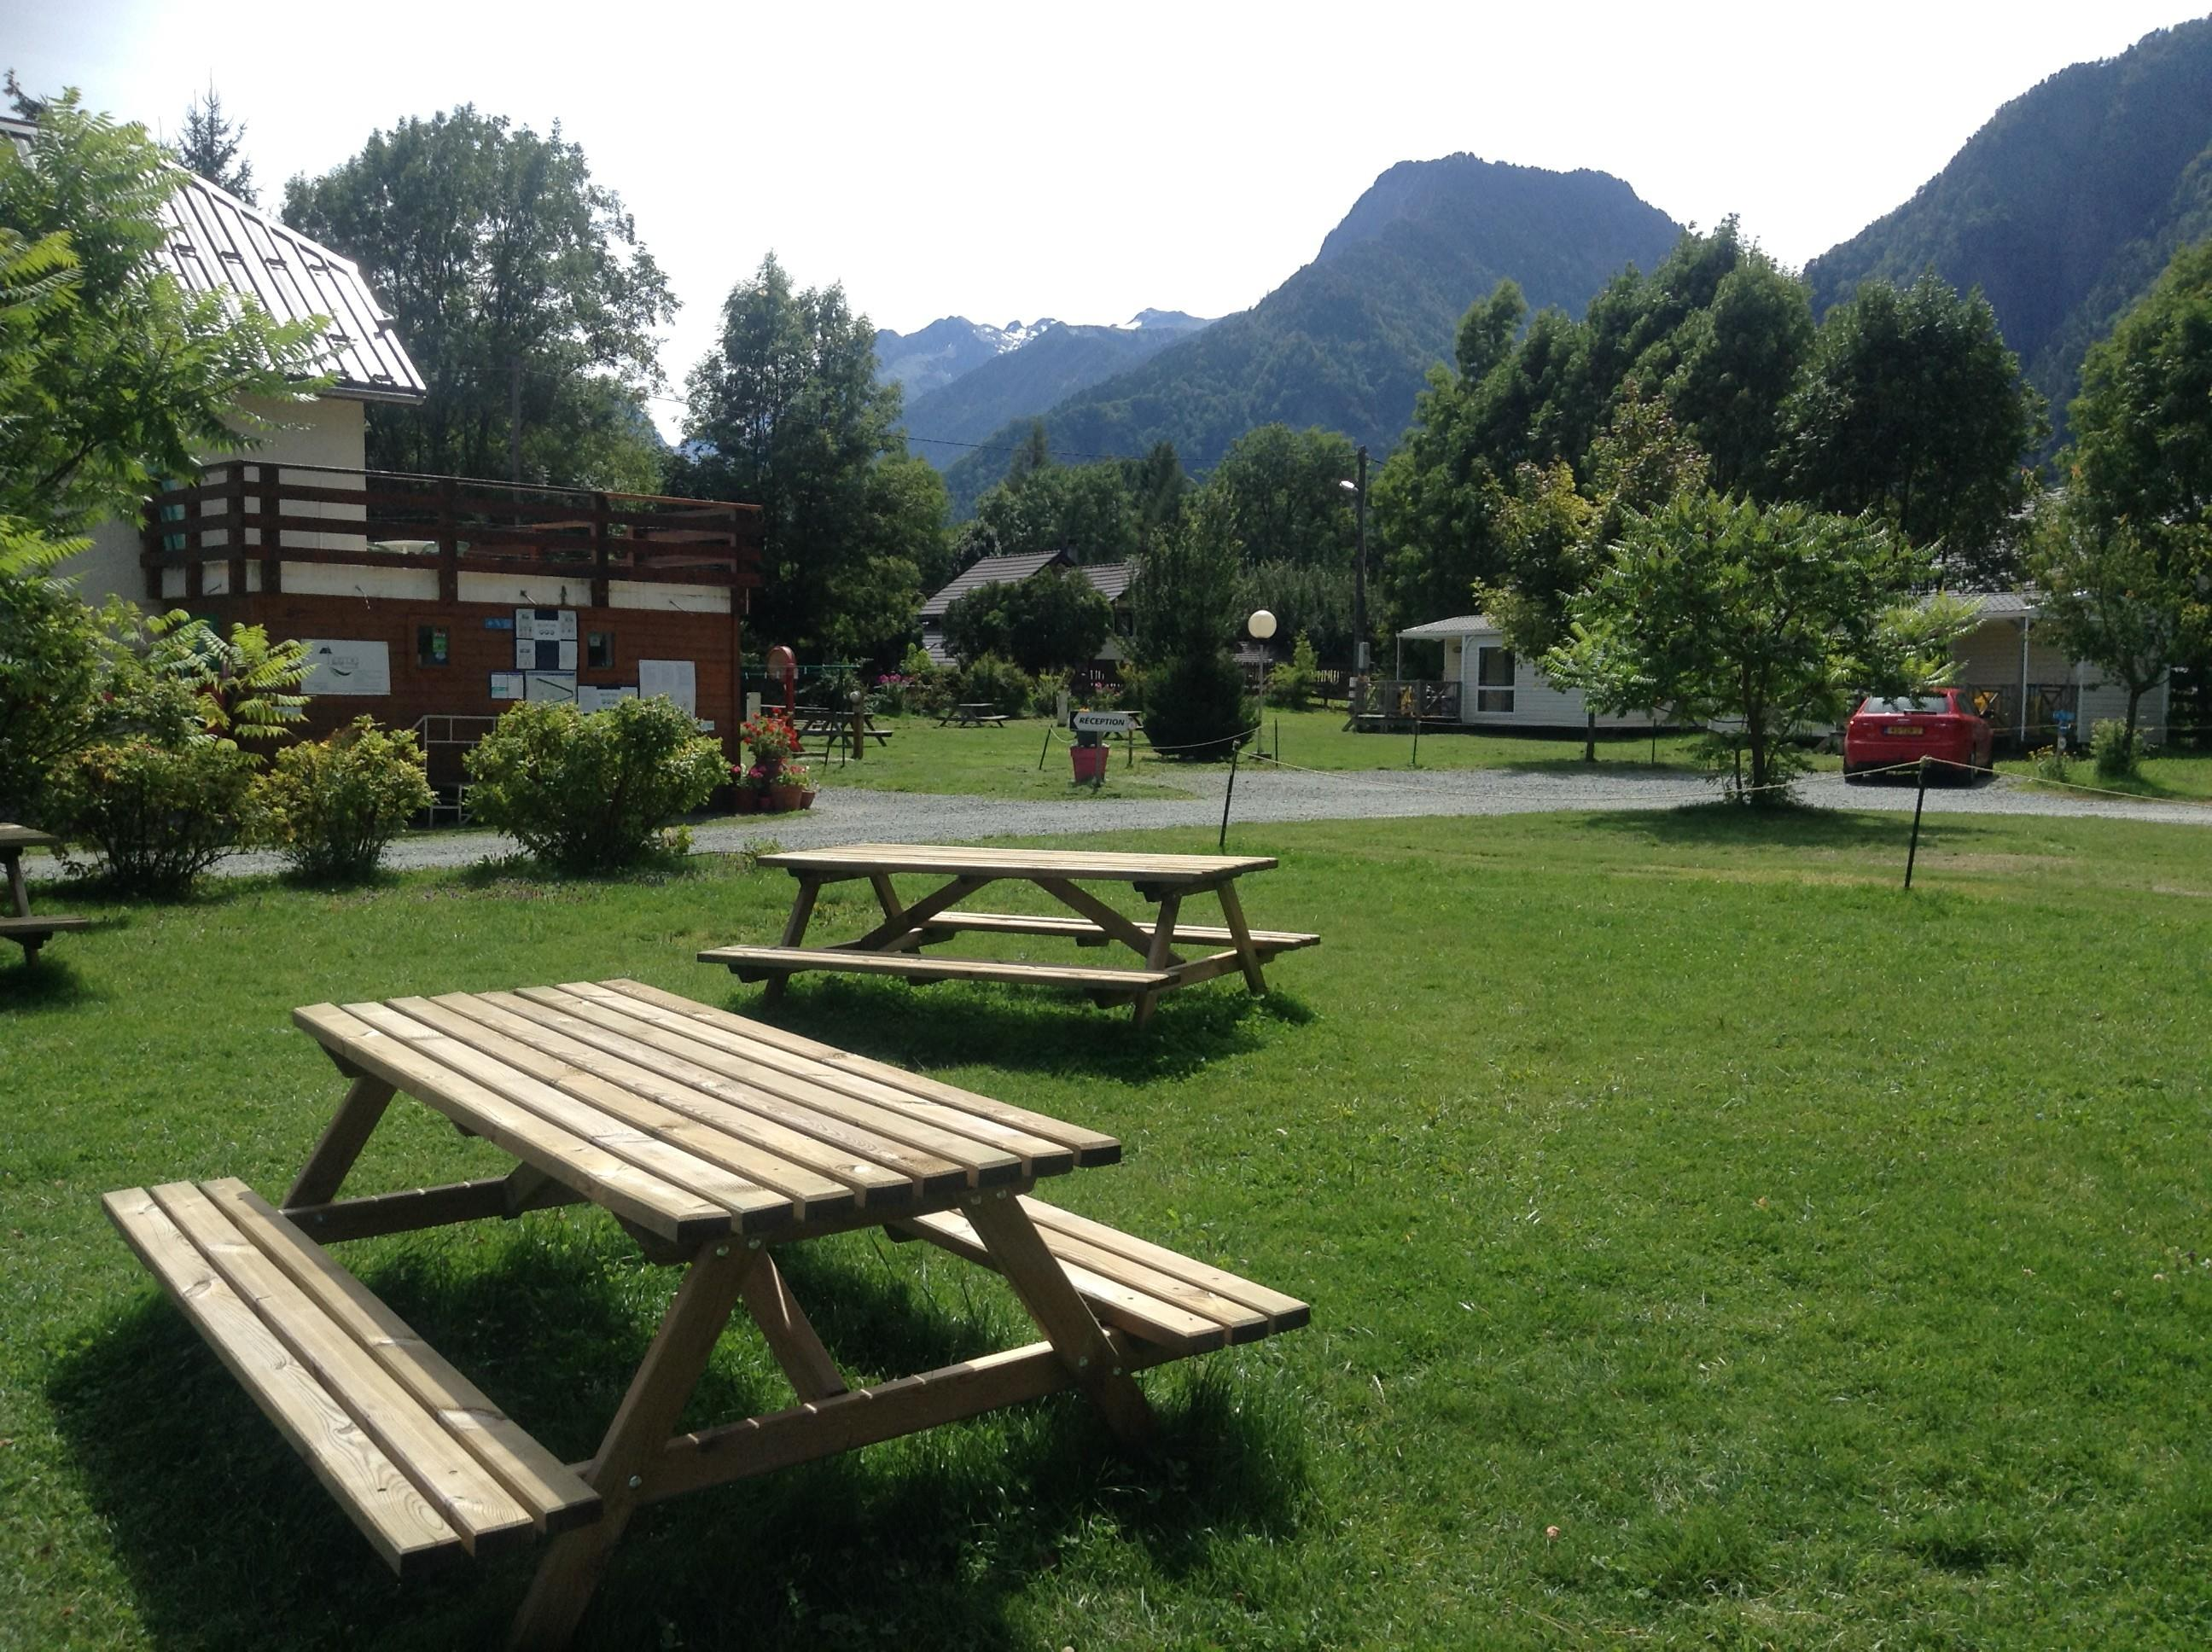 Establishment Camping La Ferme Noémie - Bourg D'oisans